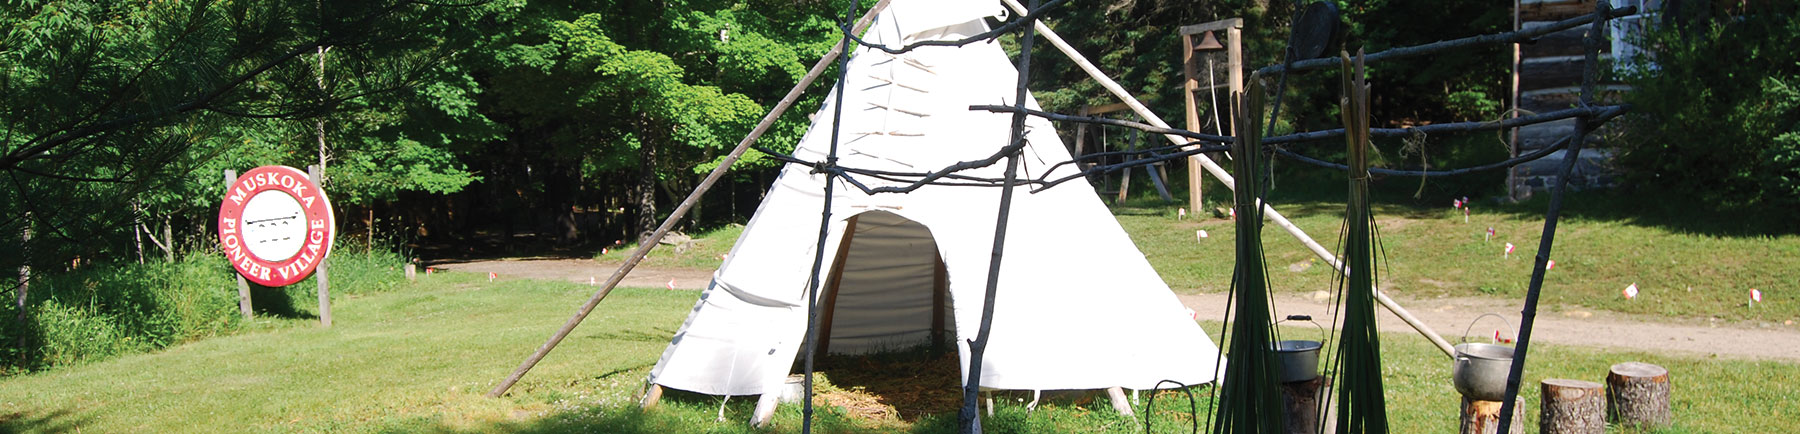 teepee in foreground, Muskoka Pioneer Village sign in background